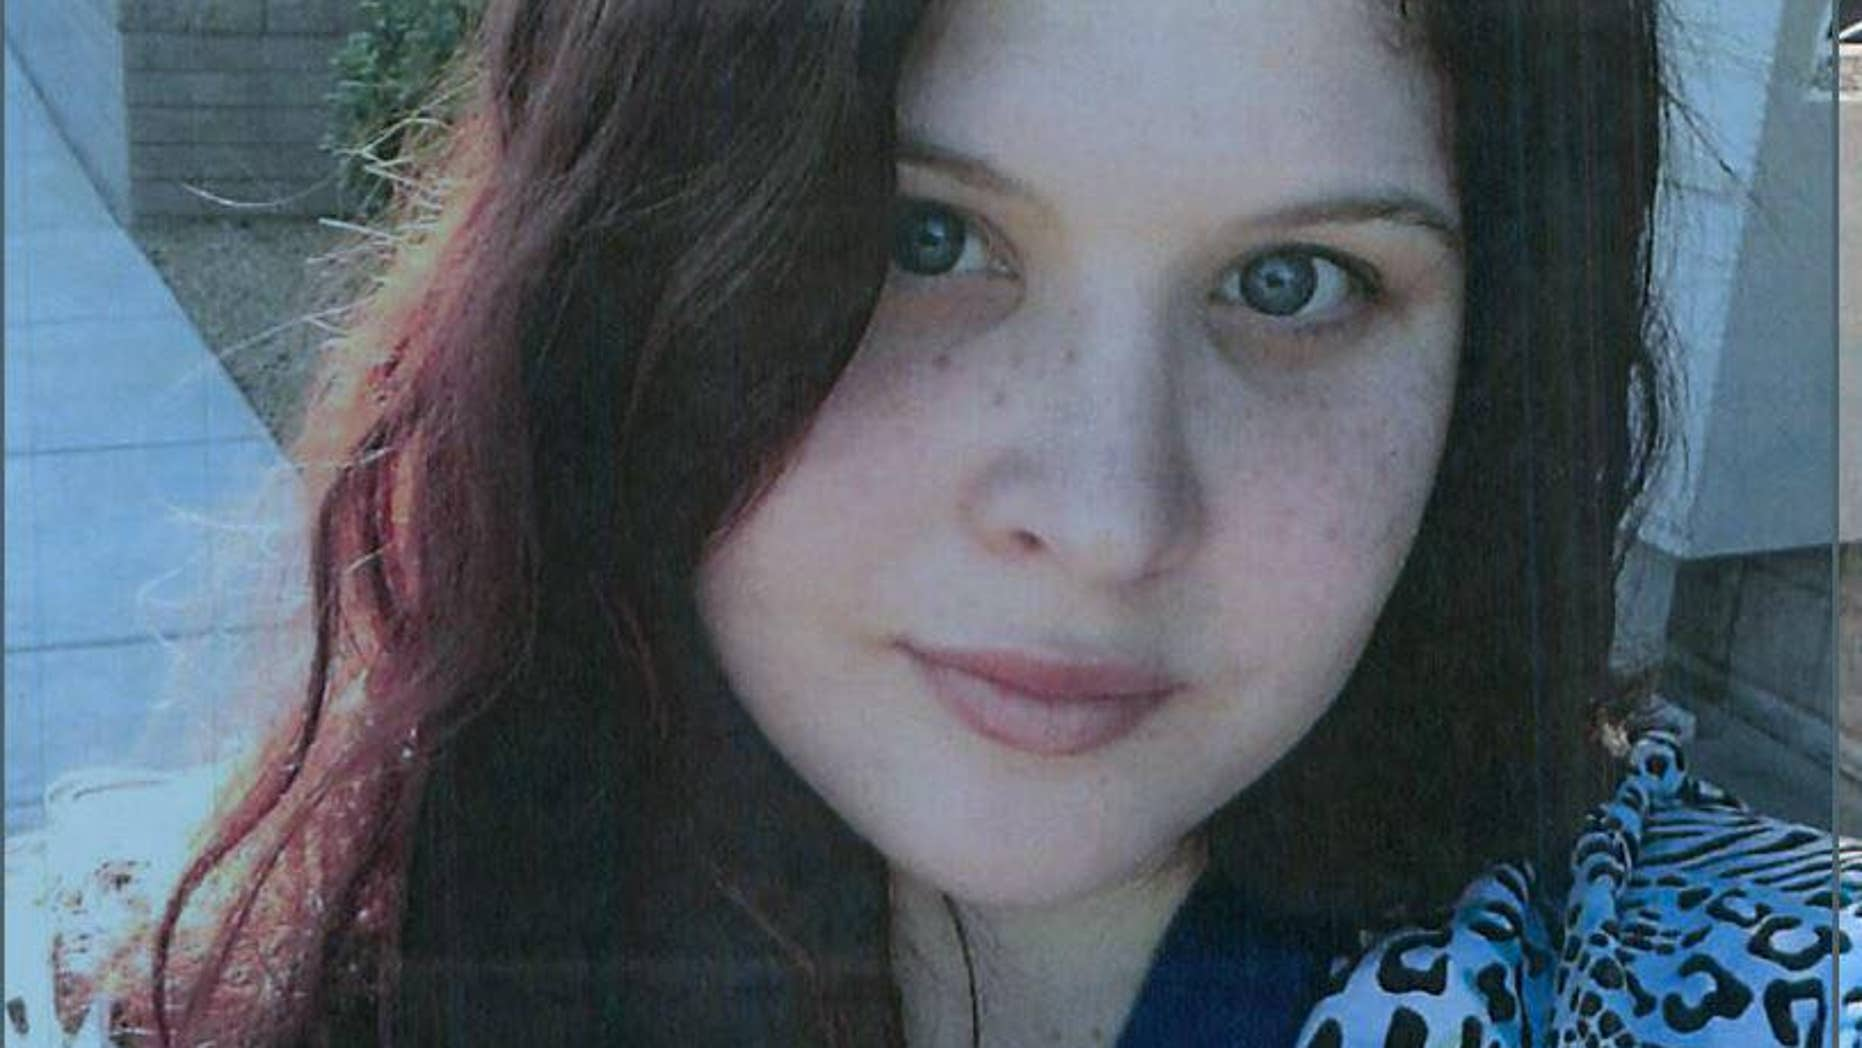 Police are searching for Angela Russo.